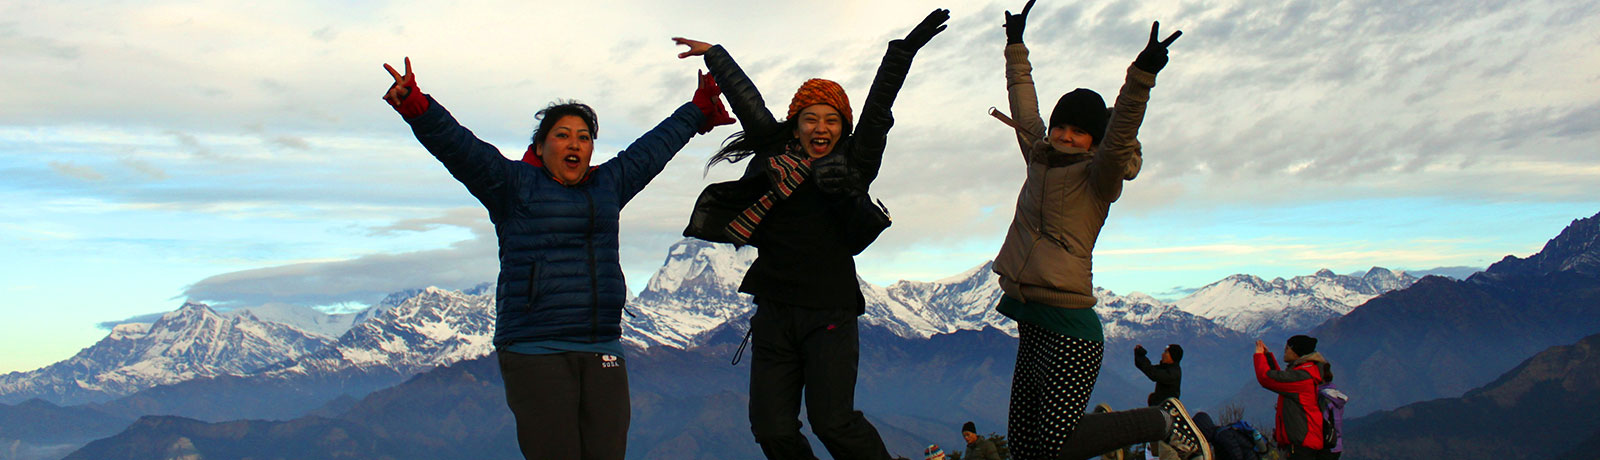 Wonderland of Himalayas – Family Holiday in Nepal